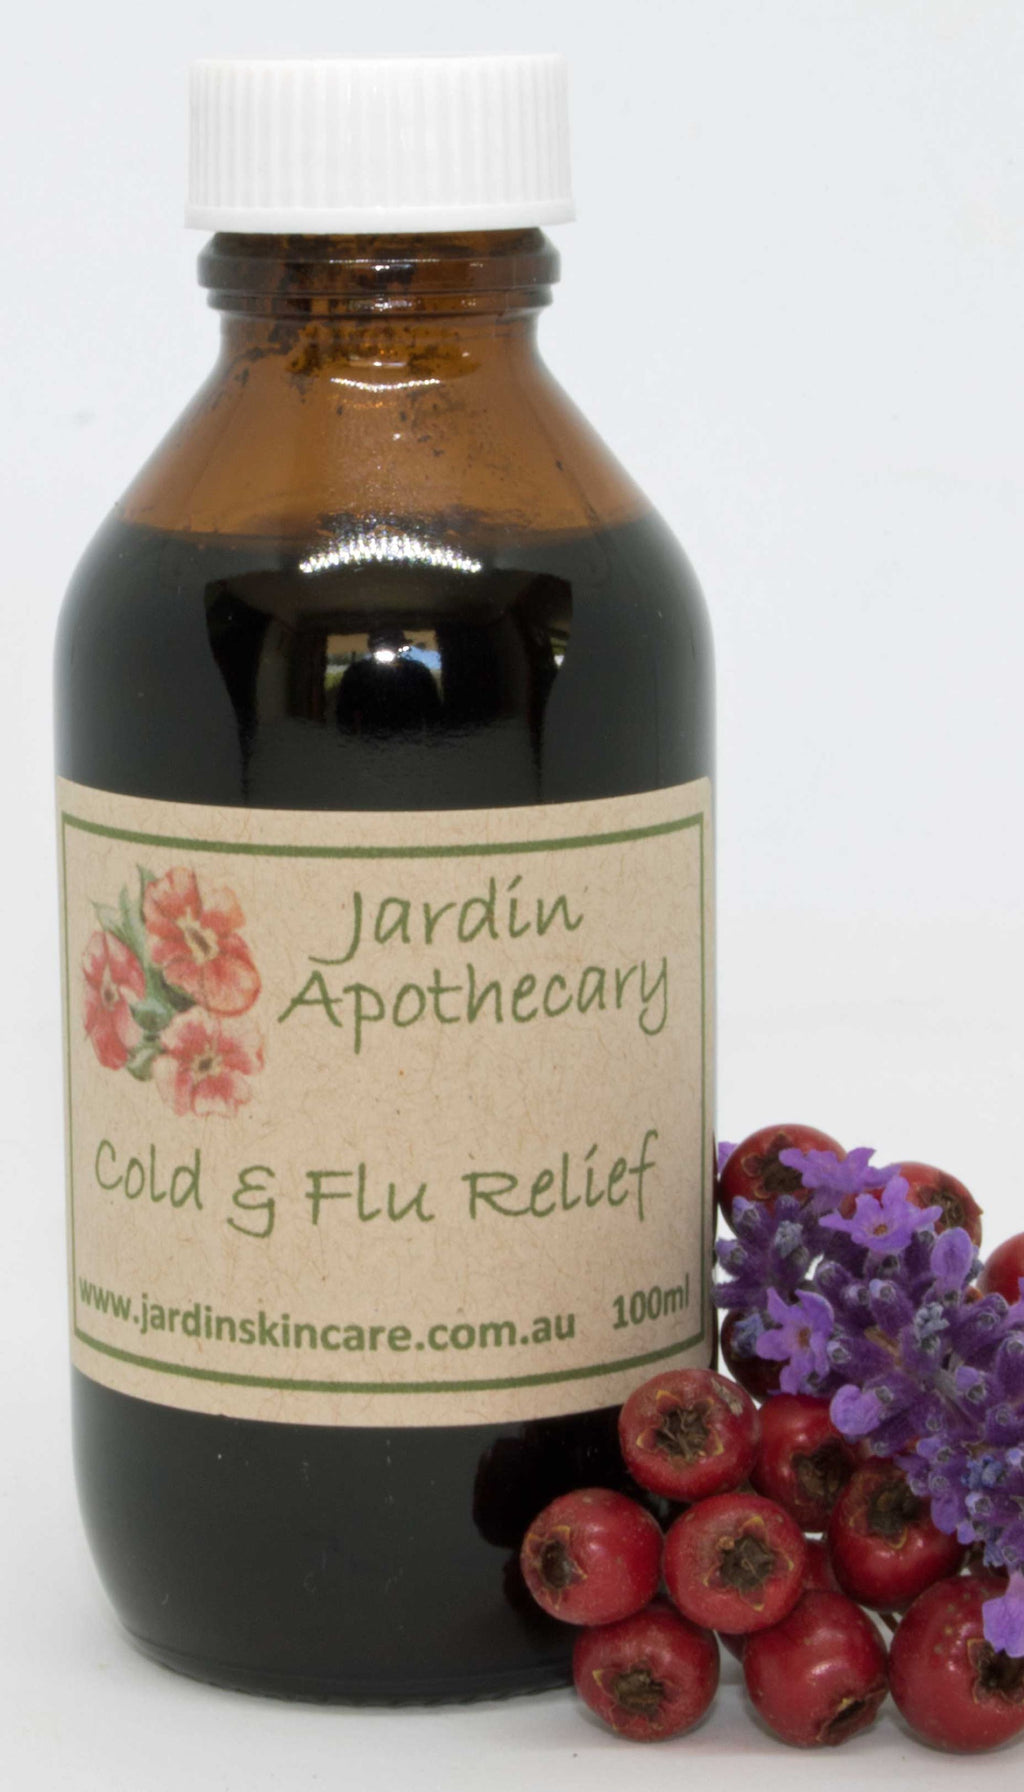 COLD & FLU RELIEF  -  100ml